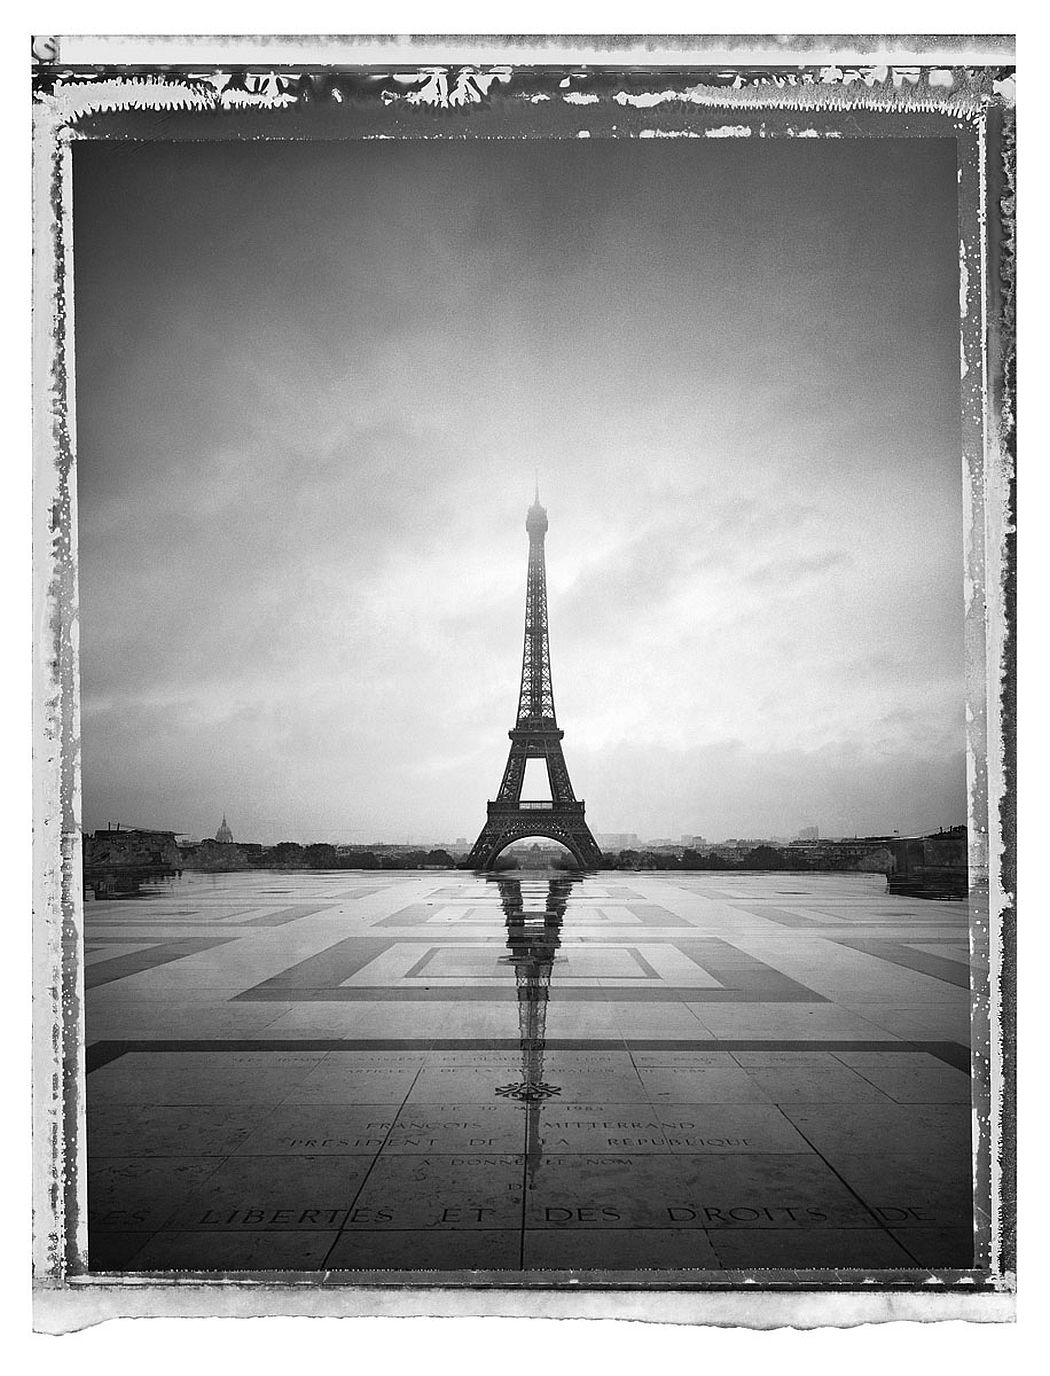 Christopher Thomas Paris Tour Eiffel VI, 2013 Pigment-Print auf Büttenpapier 76 x 56 cm, Auflage 25 © Christopher Thomas / Courtesy Persiehl & Heine Gallery for Photography